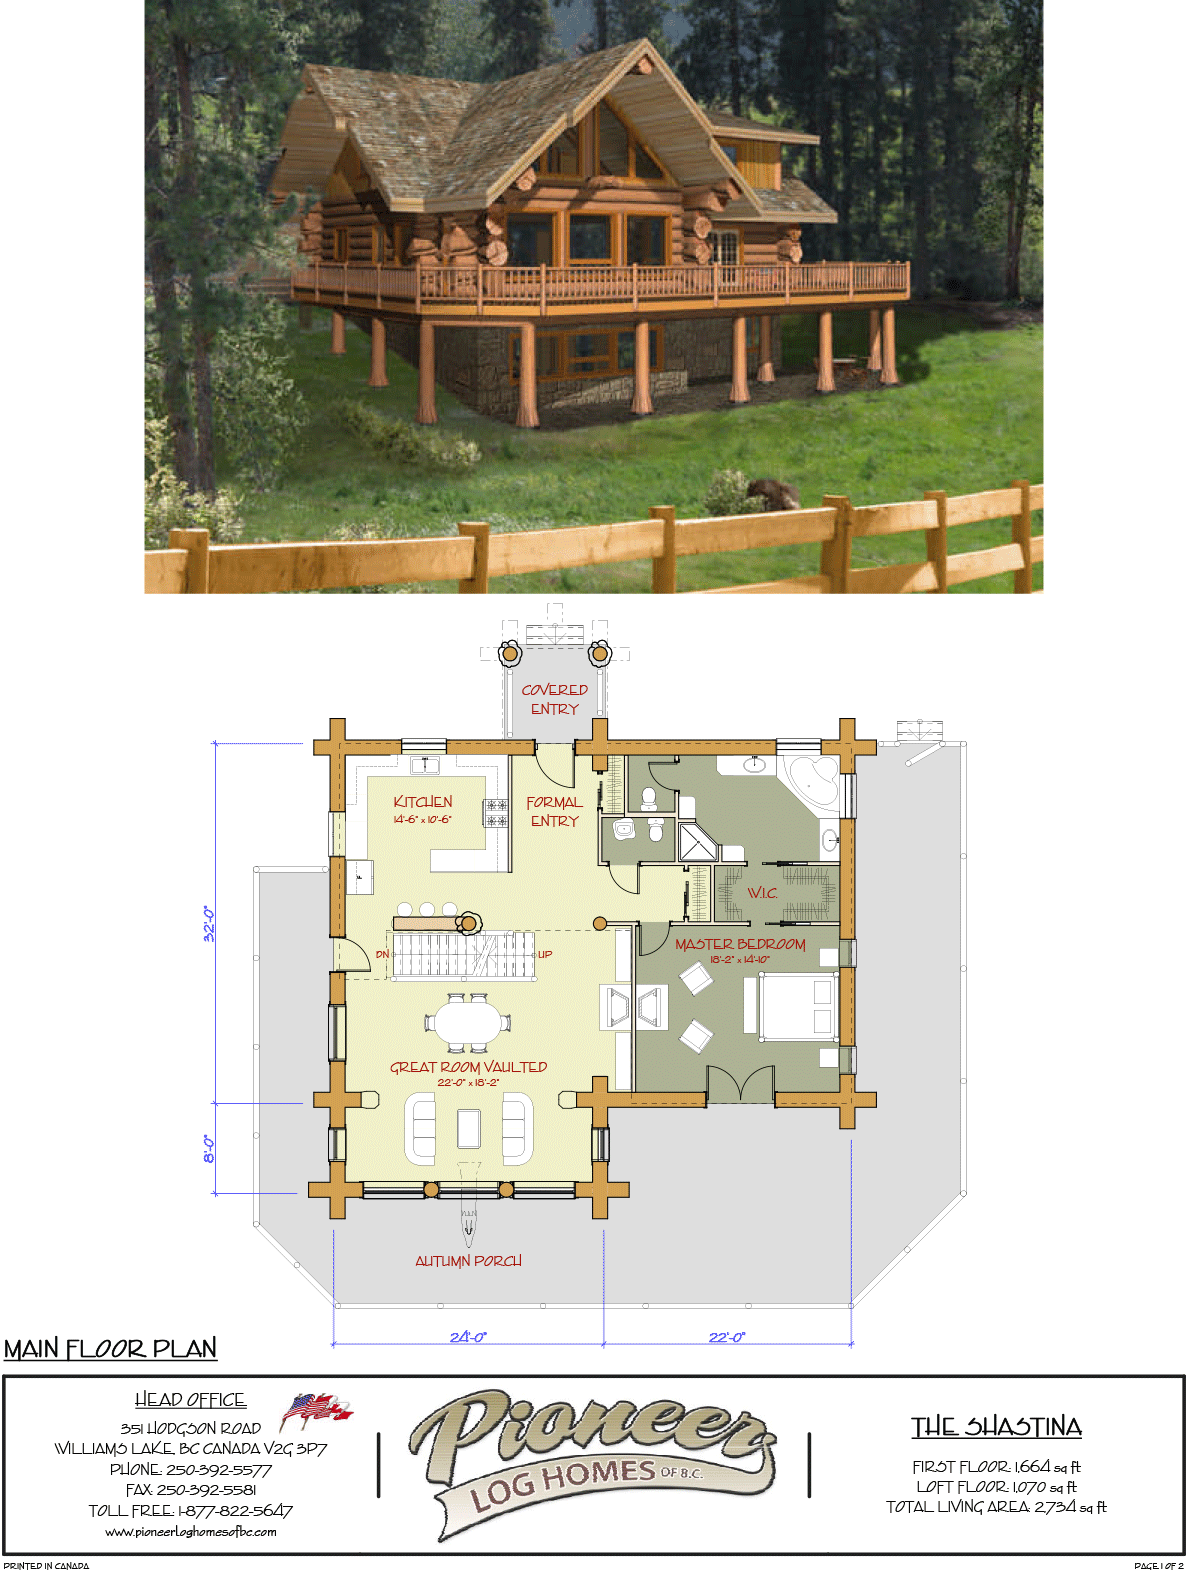 Shastina Pioneer Log Homes Midwest Log Homes Ranch Style House Plans Mountain Home Exterior